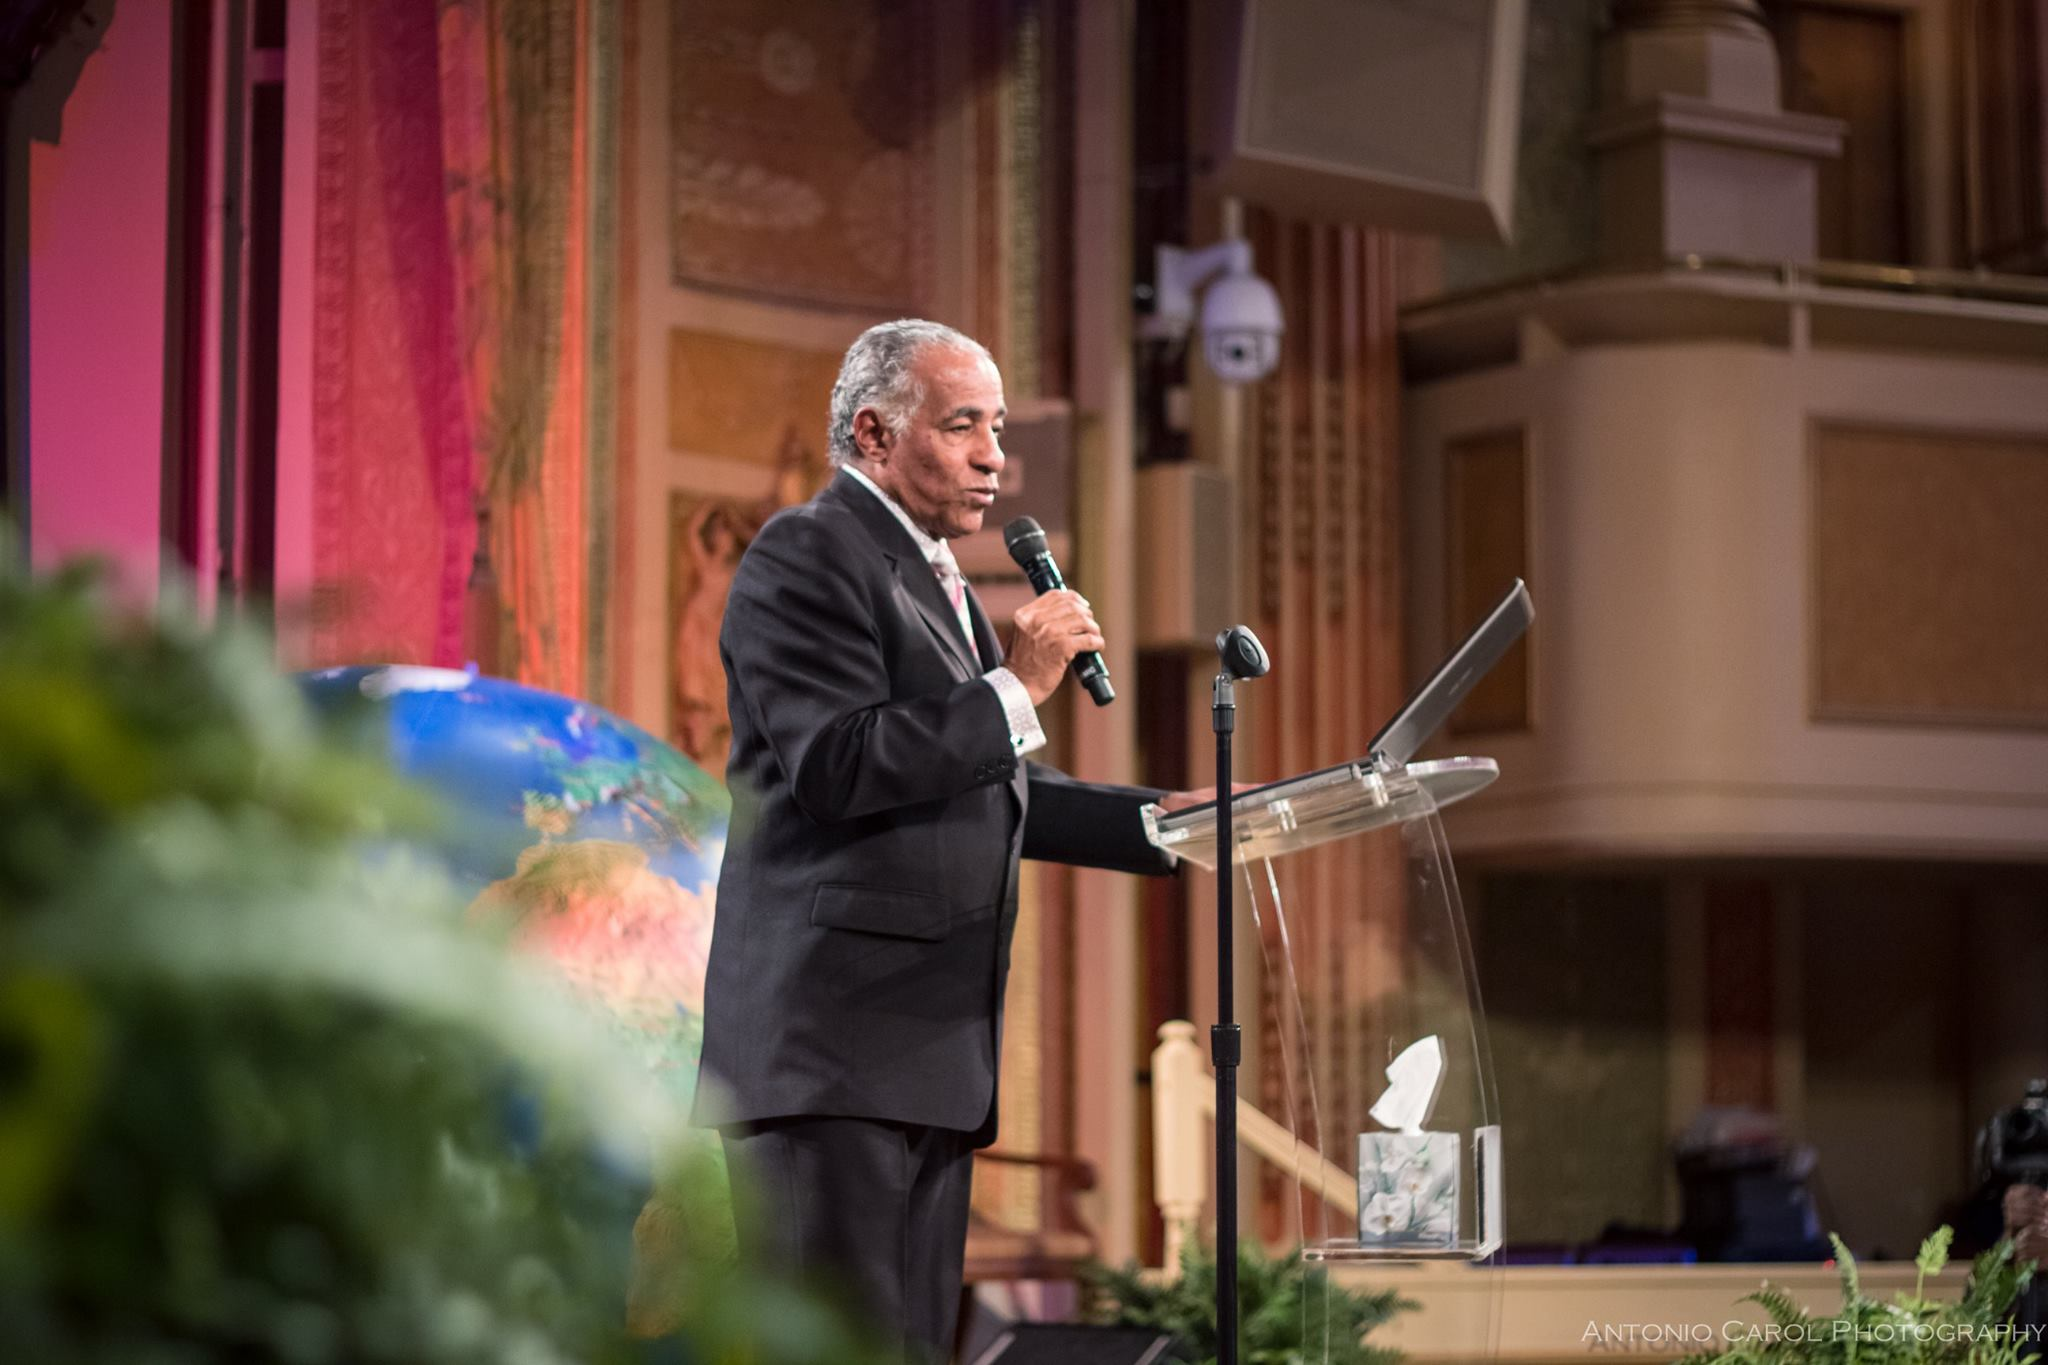 Dr. C. B. Peter Morgan, Former President of the International Third World Leaders Association and Chairman of the Global Leaders Prayer Gathering Steering Committee, presenting the agenda for the powerful time of prayer that followed.